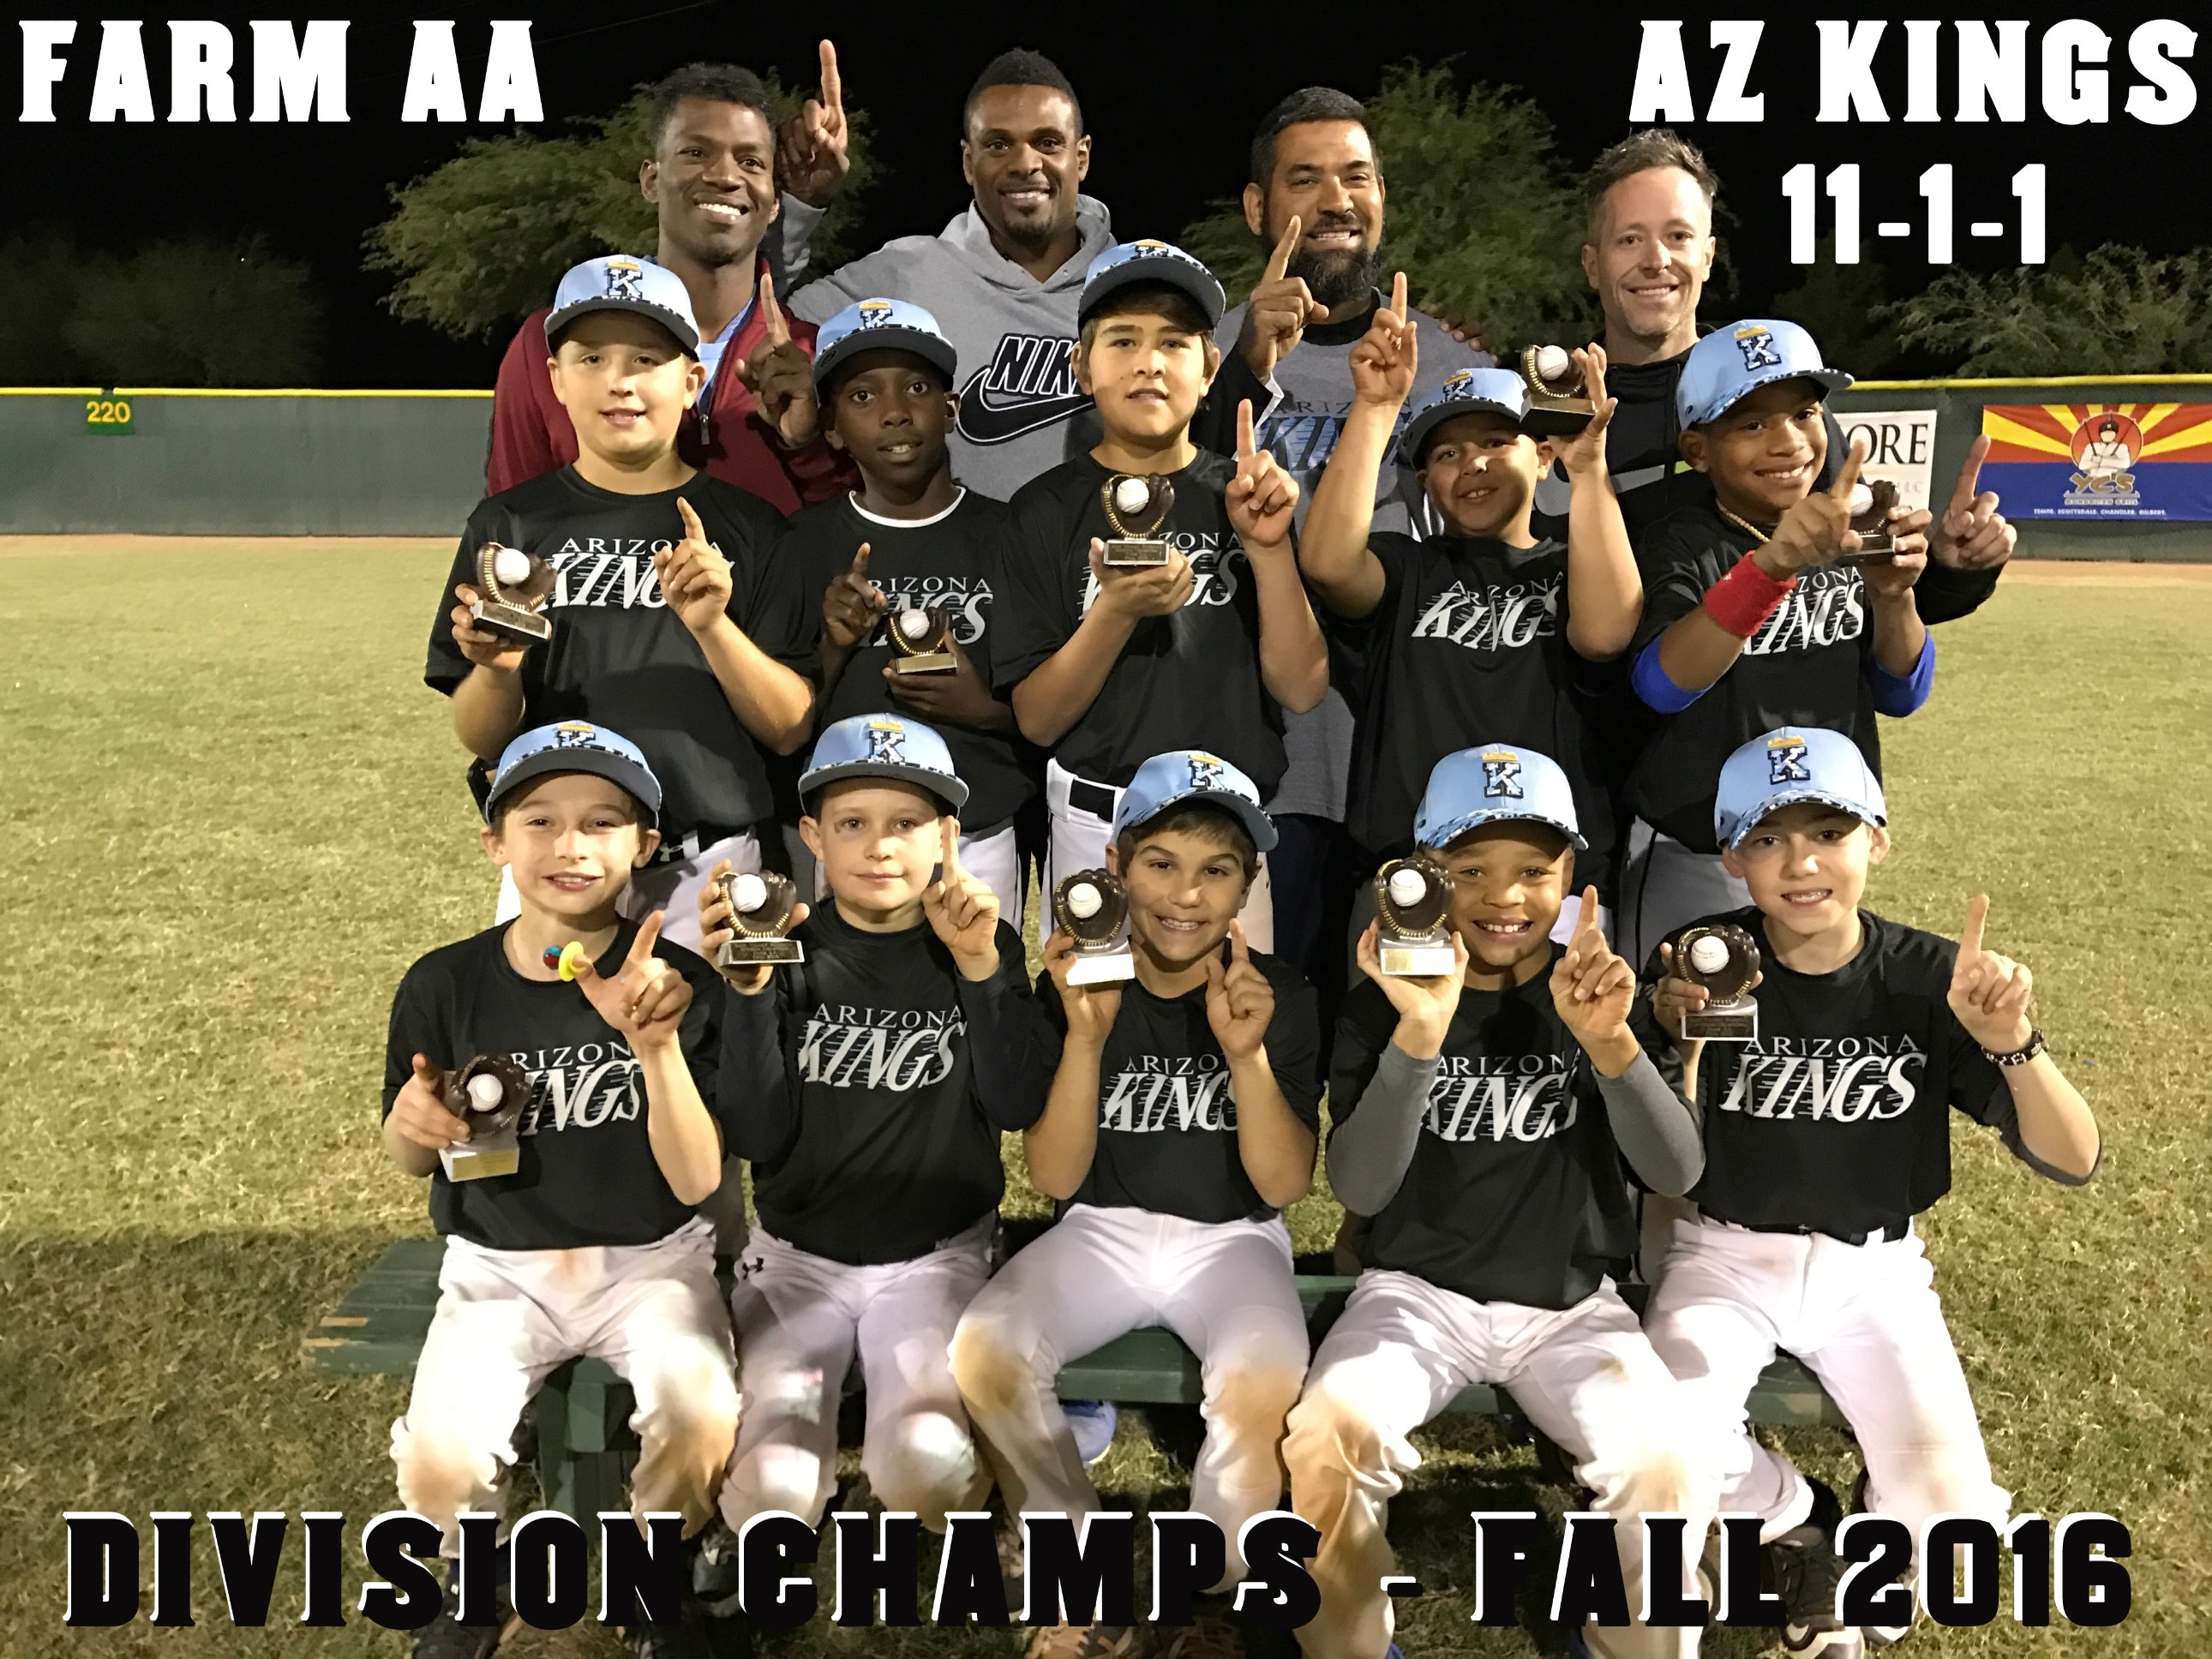 Arizona Kings Baseball